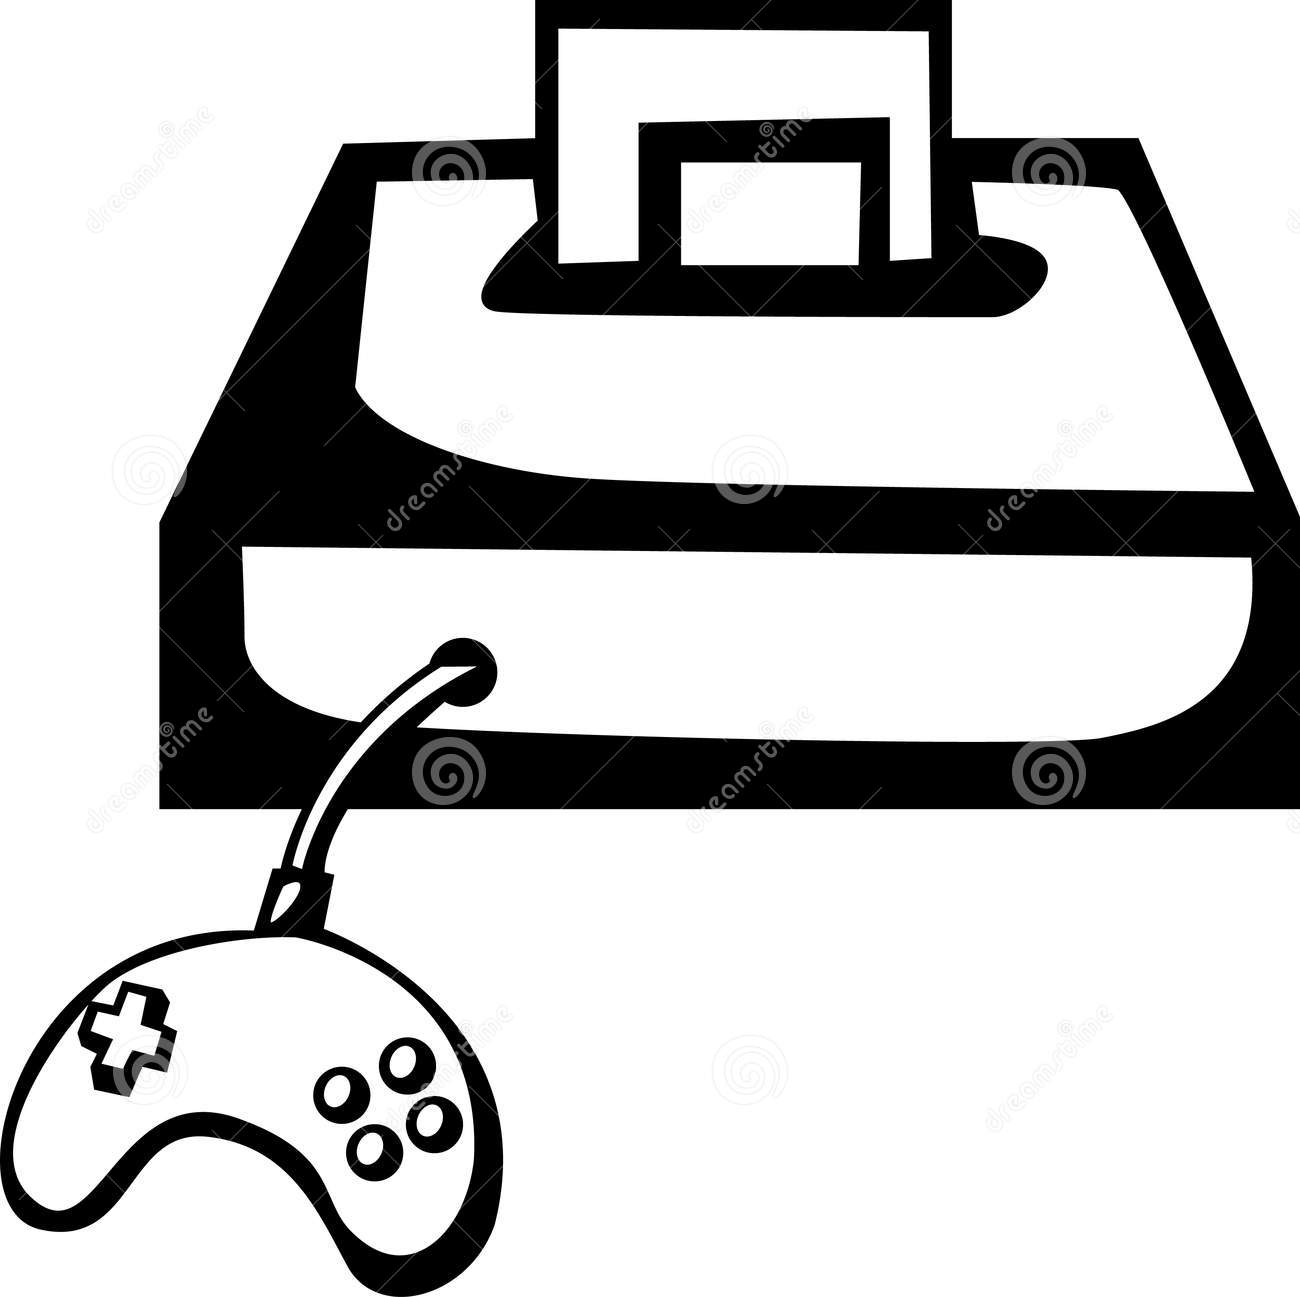 Video game console clipart black.